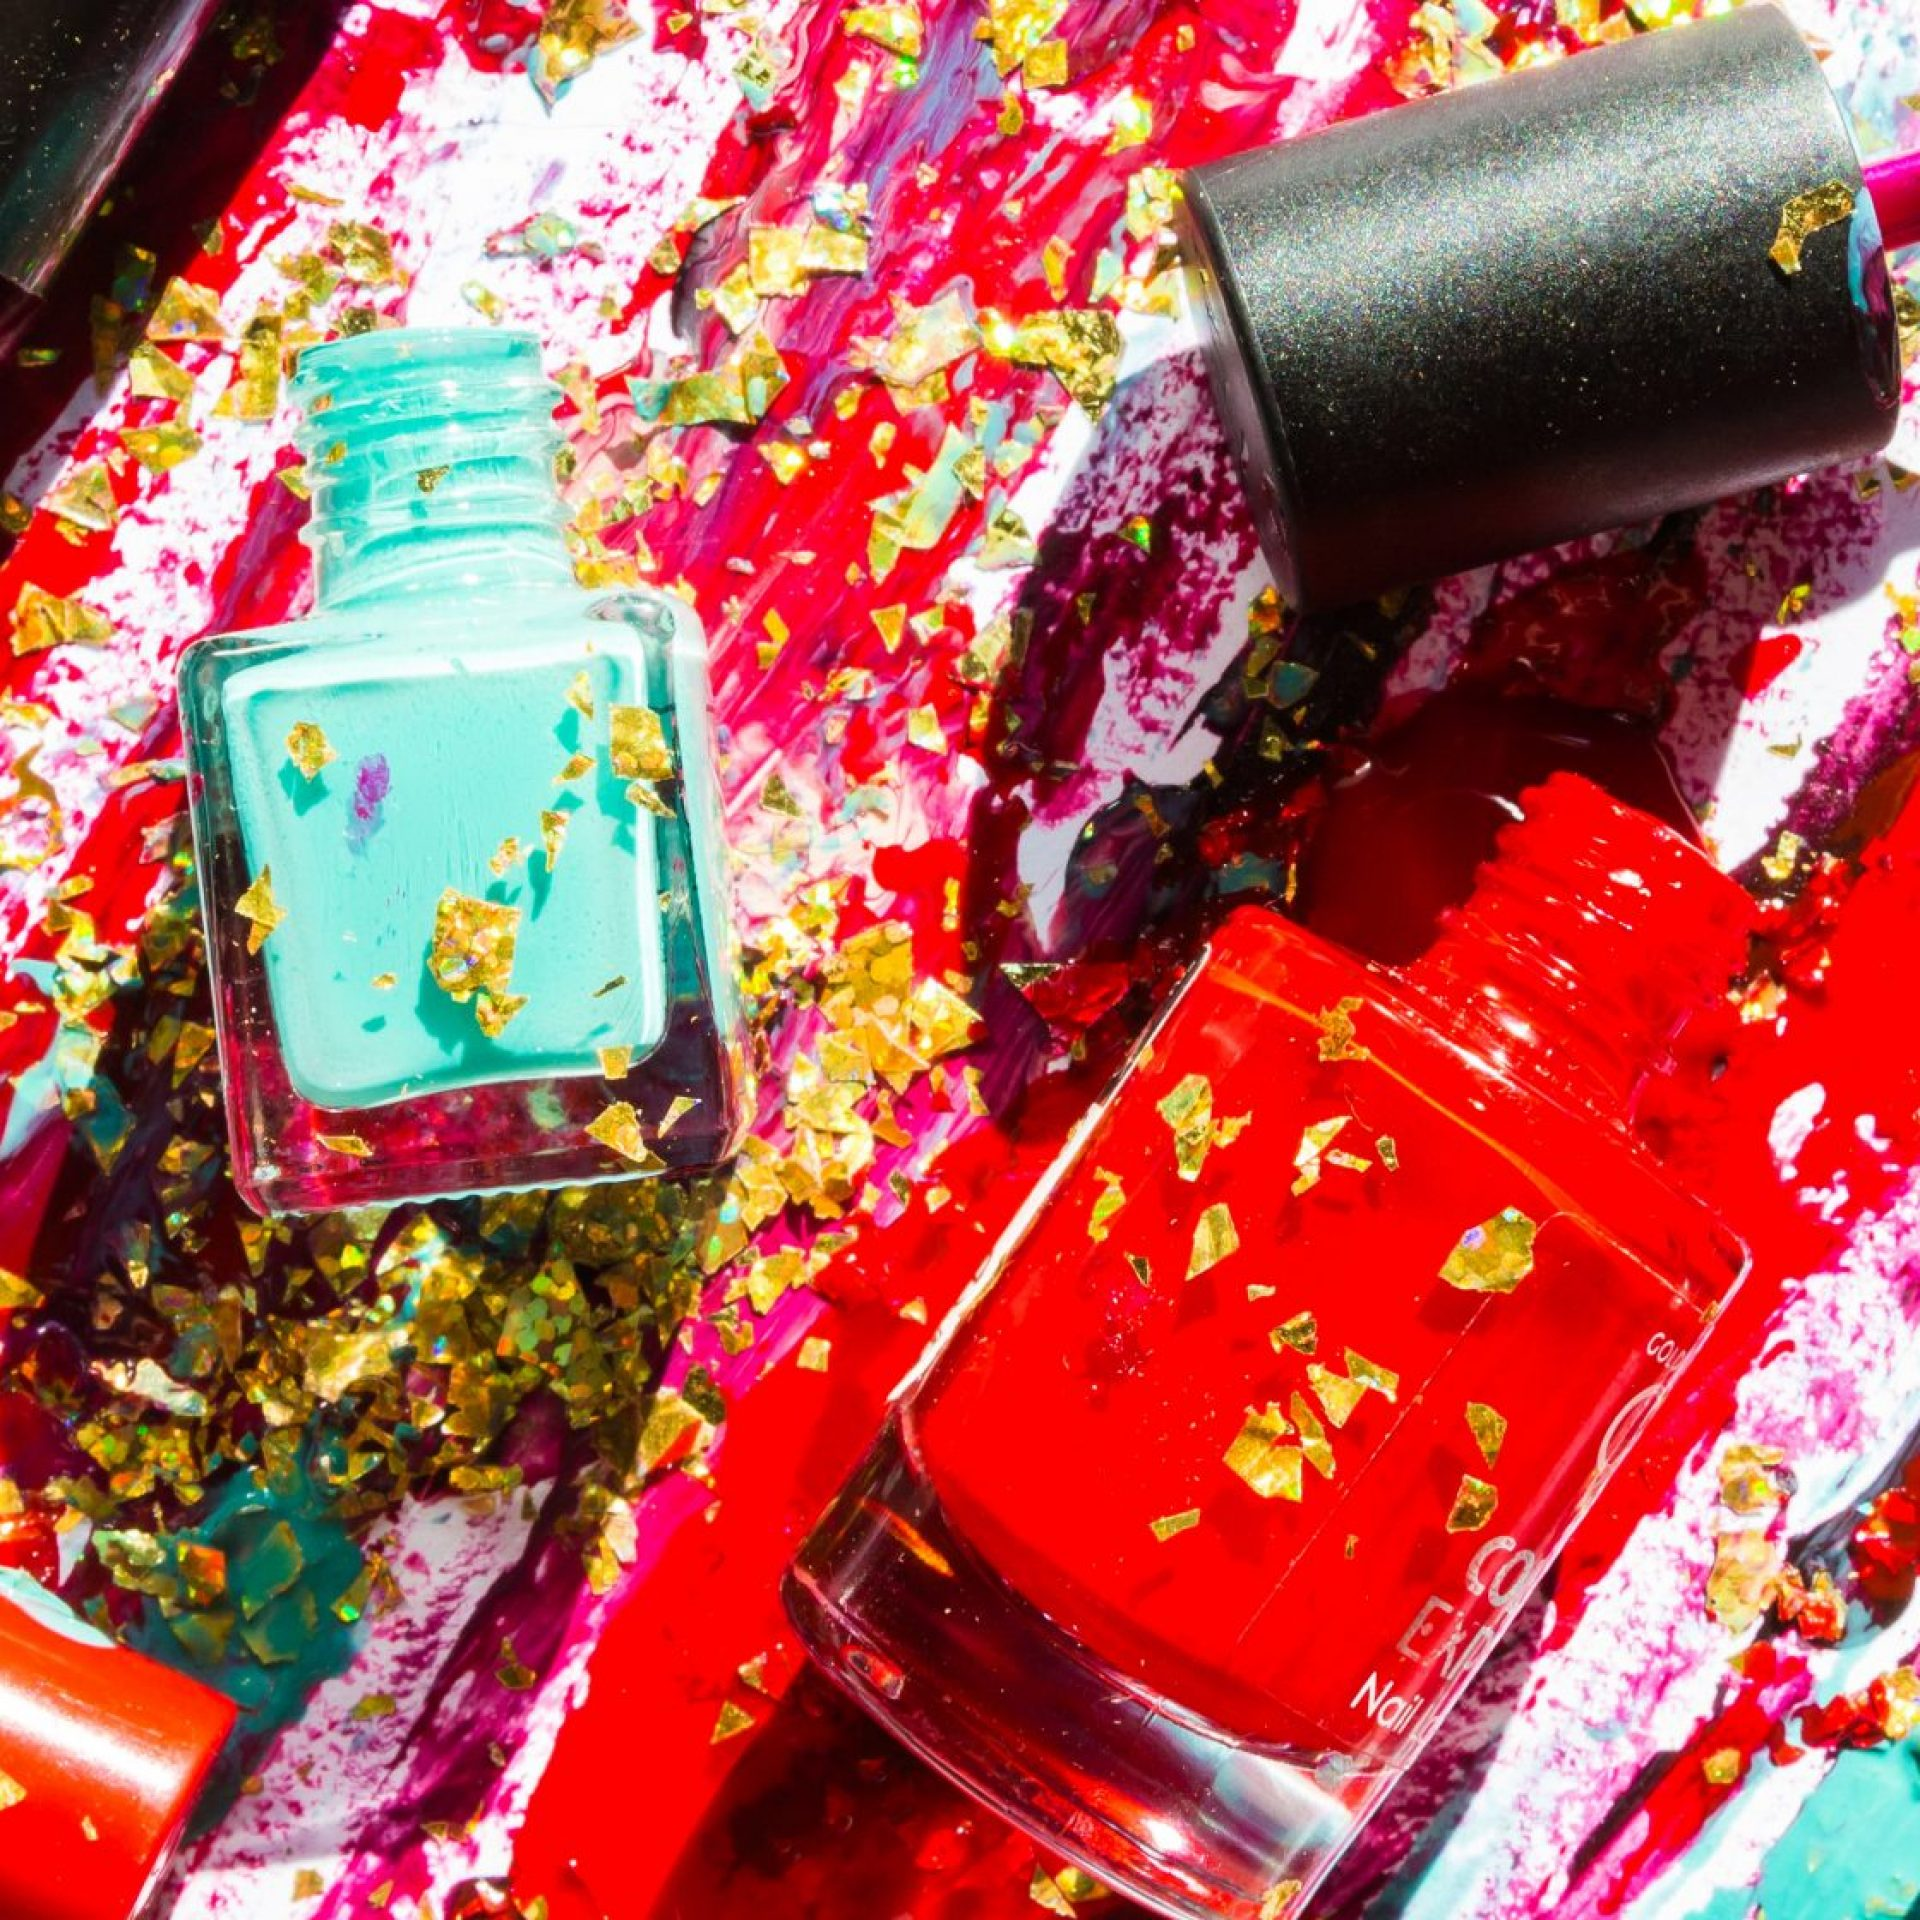 Colorful nail lacquer ads, nail polish splatter on white background